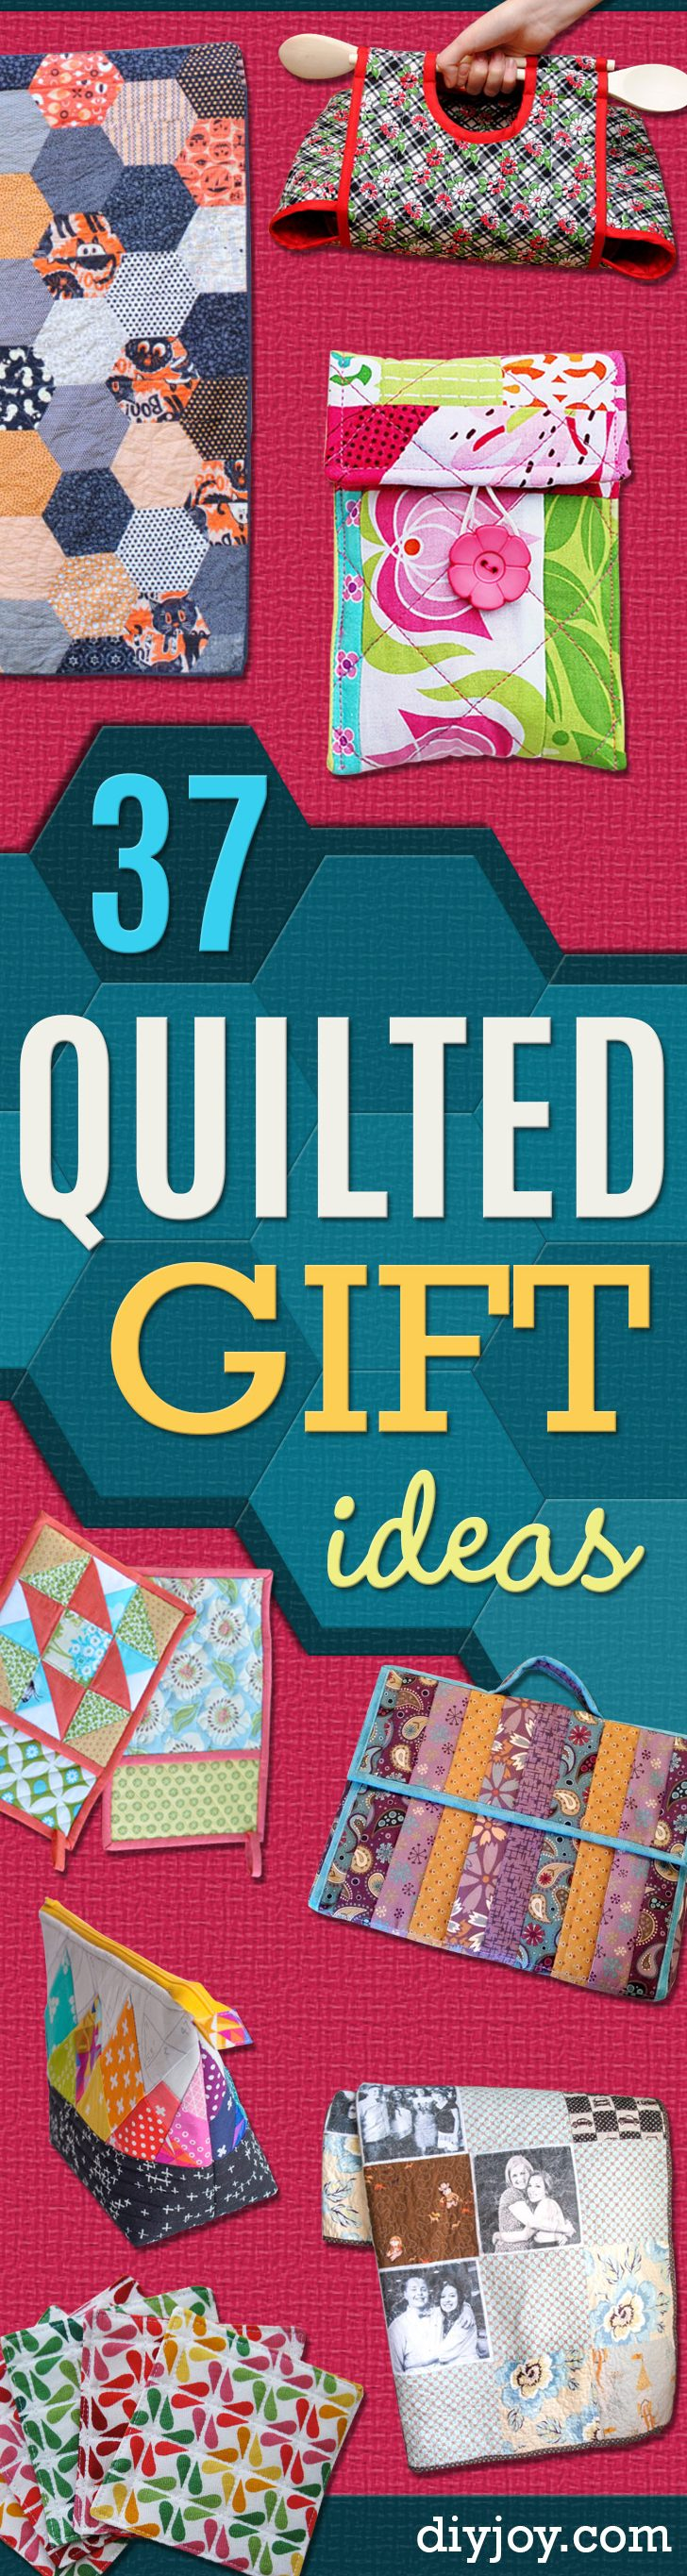 Best Quilting Projects for DIY Gifts - Things You Can Quilt and Sew for Friends, Family and Christmas Gift Ideas - Easy and Quick Quilting Patterns for Presents To Give At Holidays, Birthdays and Baby Gifts. Step by Step Tutorials and Instructions